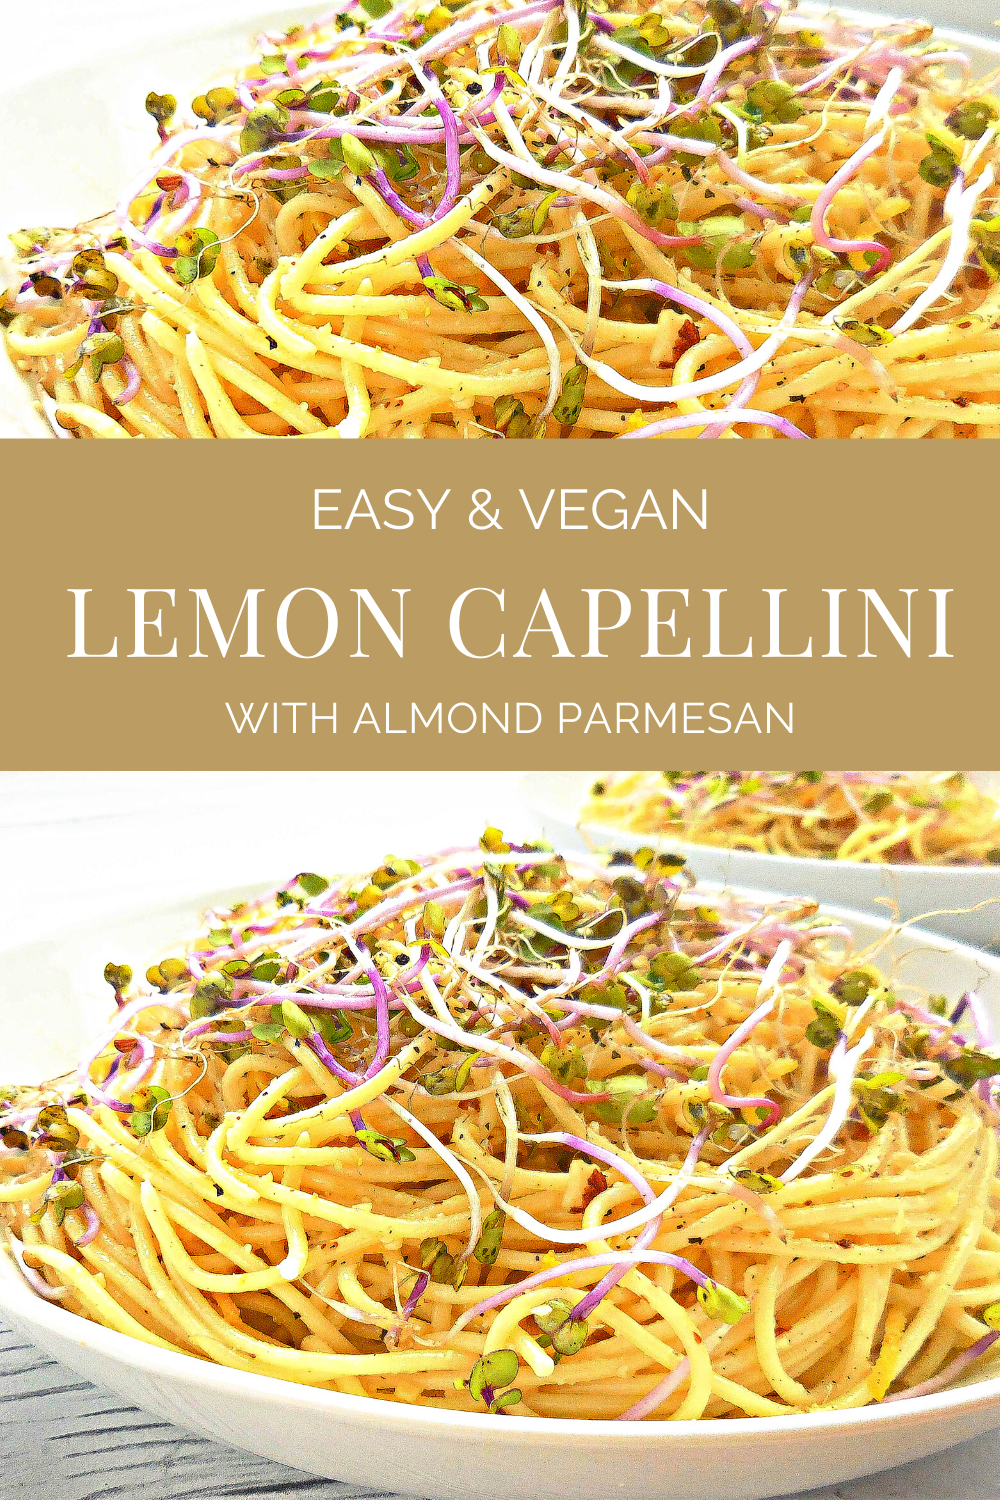 Lemon Capellini with Homemade Vegan Almond Parmesan - A quick and easy chilled pasta perfect for a weeknight dinner or make-ahead for a summertime potluck. #veganpasta #easyvegandinner #lemonspaghettu #thiswifecooksrecipes #coldpasta #pastapotluckrecipes via @thiswifecooks